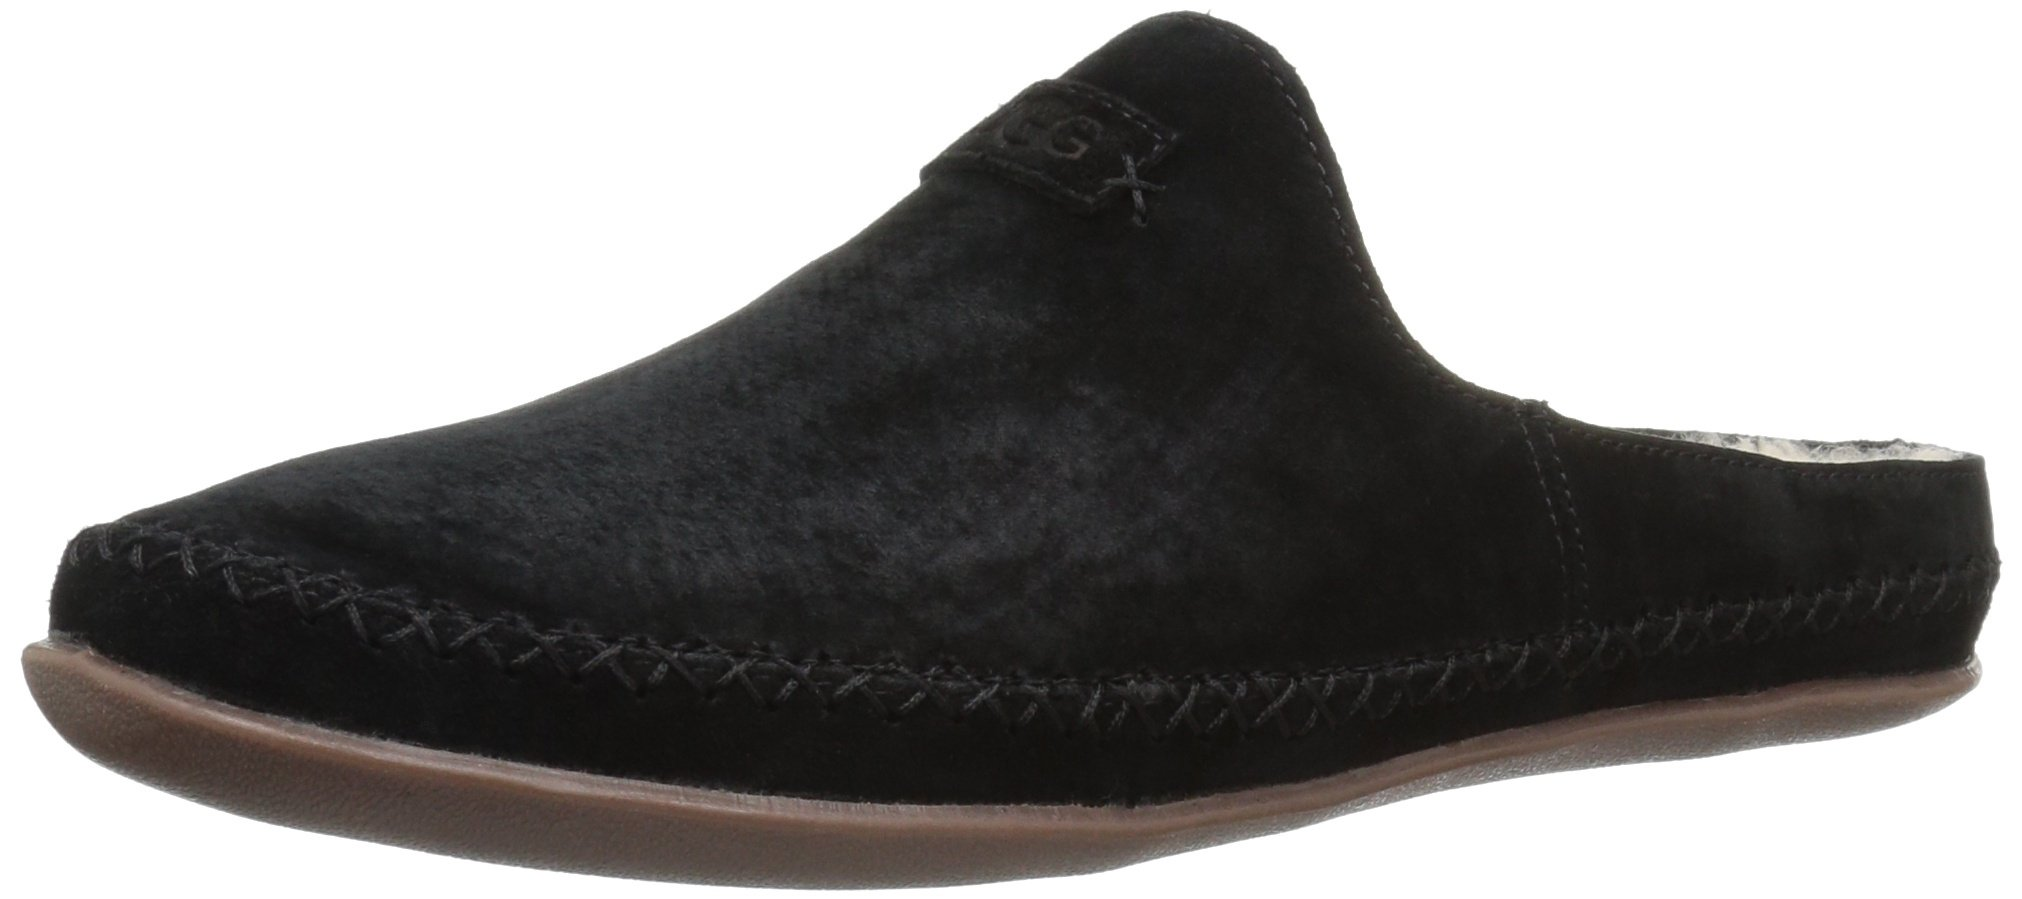 UGG Women's Tamara Snow Suede, Black, 8 M US